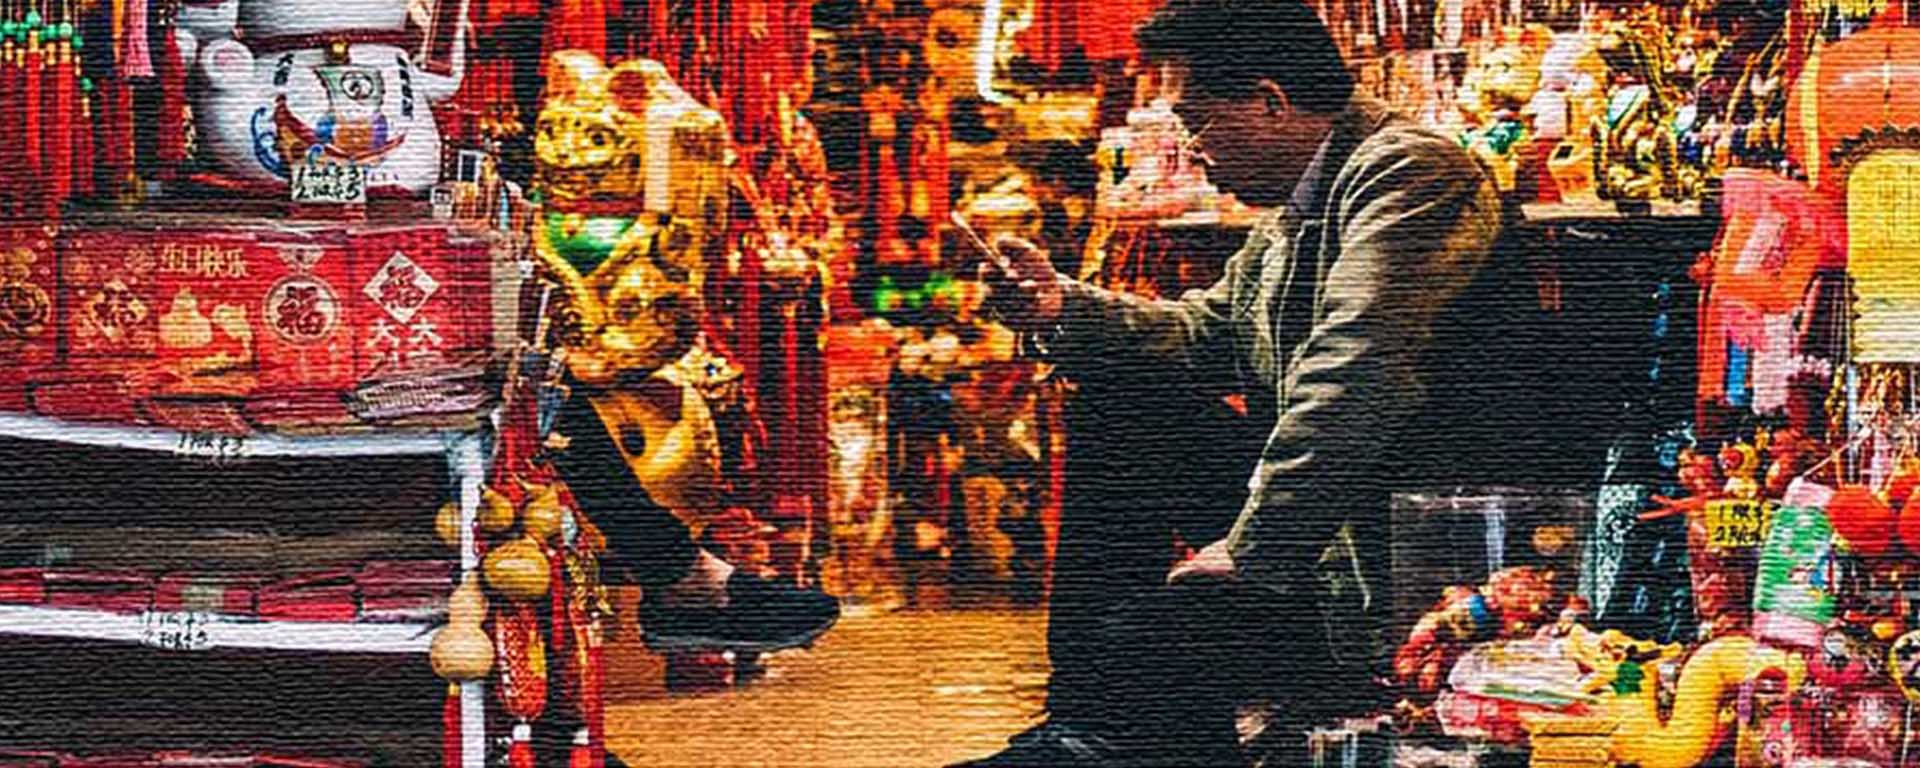 A Chinese man sits in a Chinese shop reading his phone